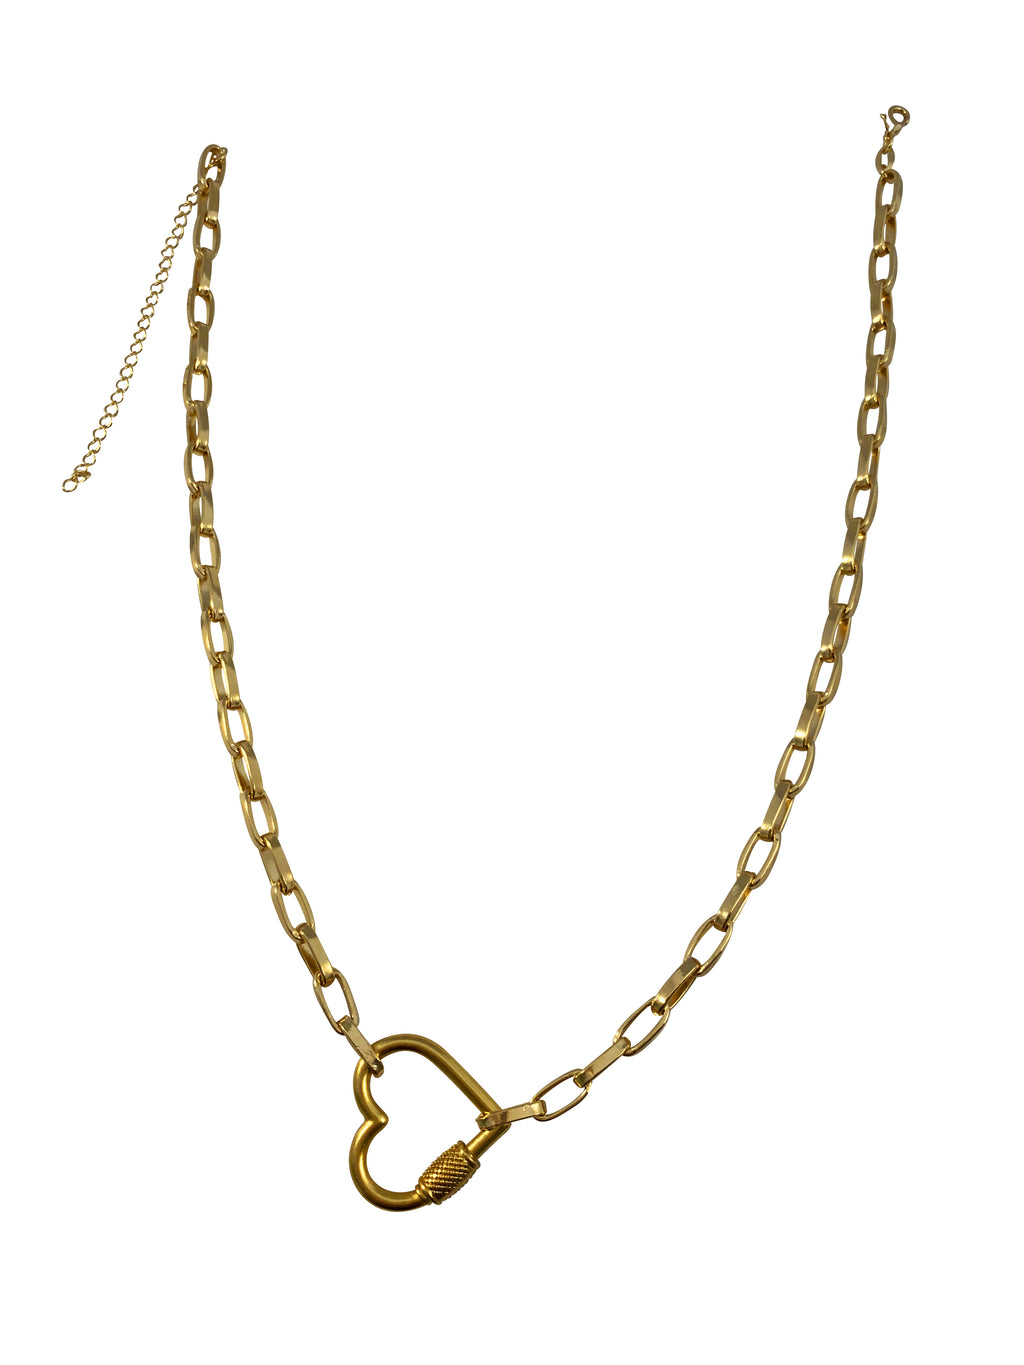 Scarlett Heart Lock Necklace